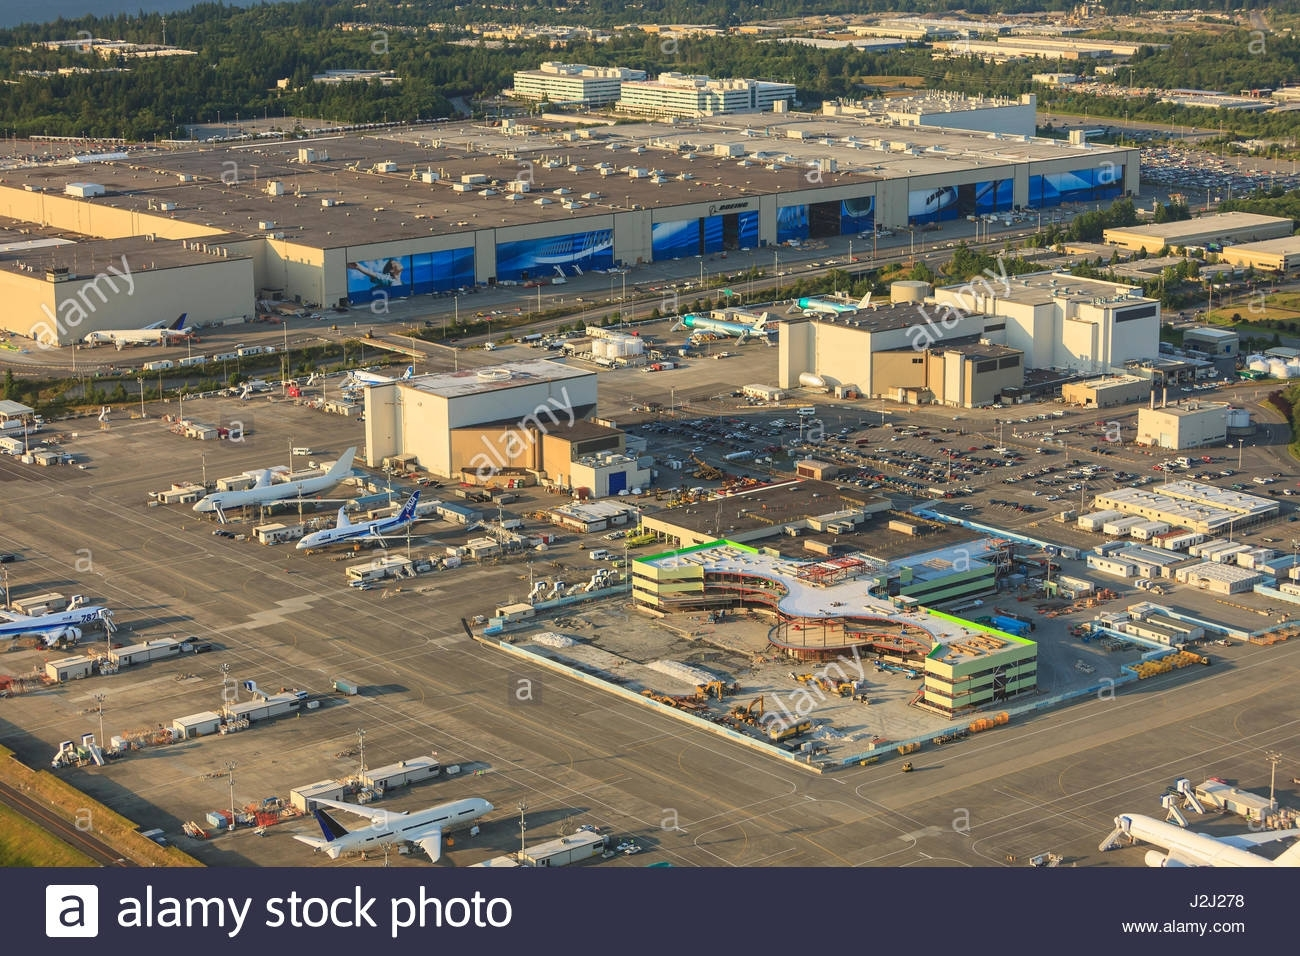 Aerial View Of Paine Field And Boeing Everett Plant, Largest inside Boeing Factory Tour Map